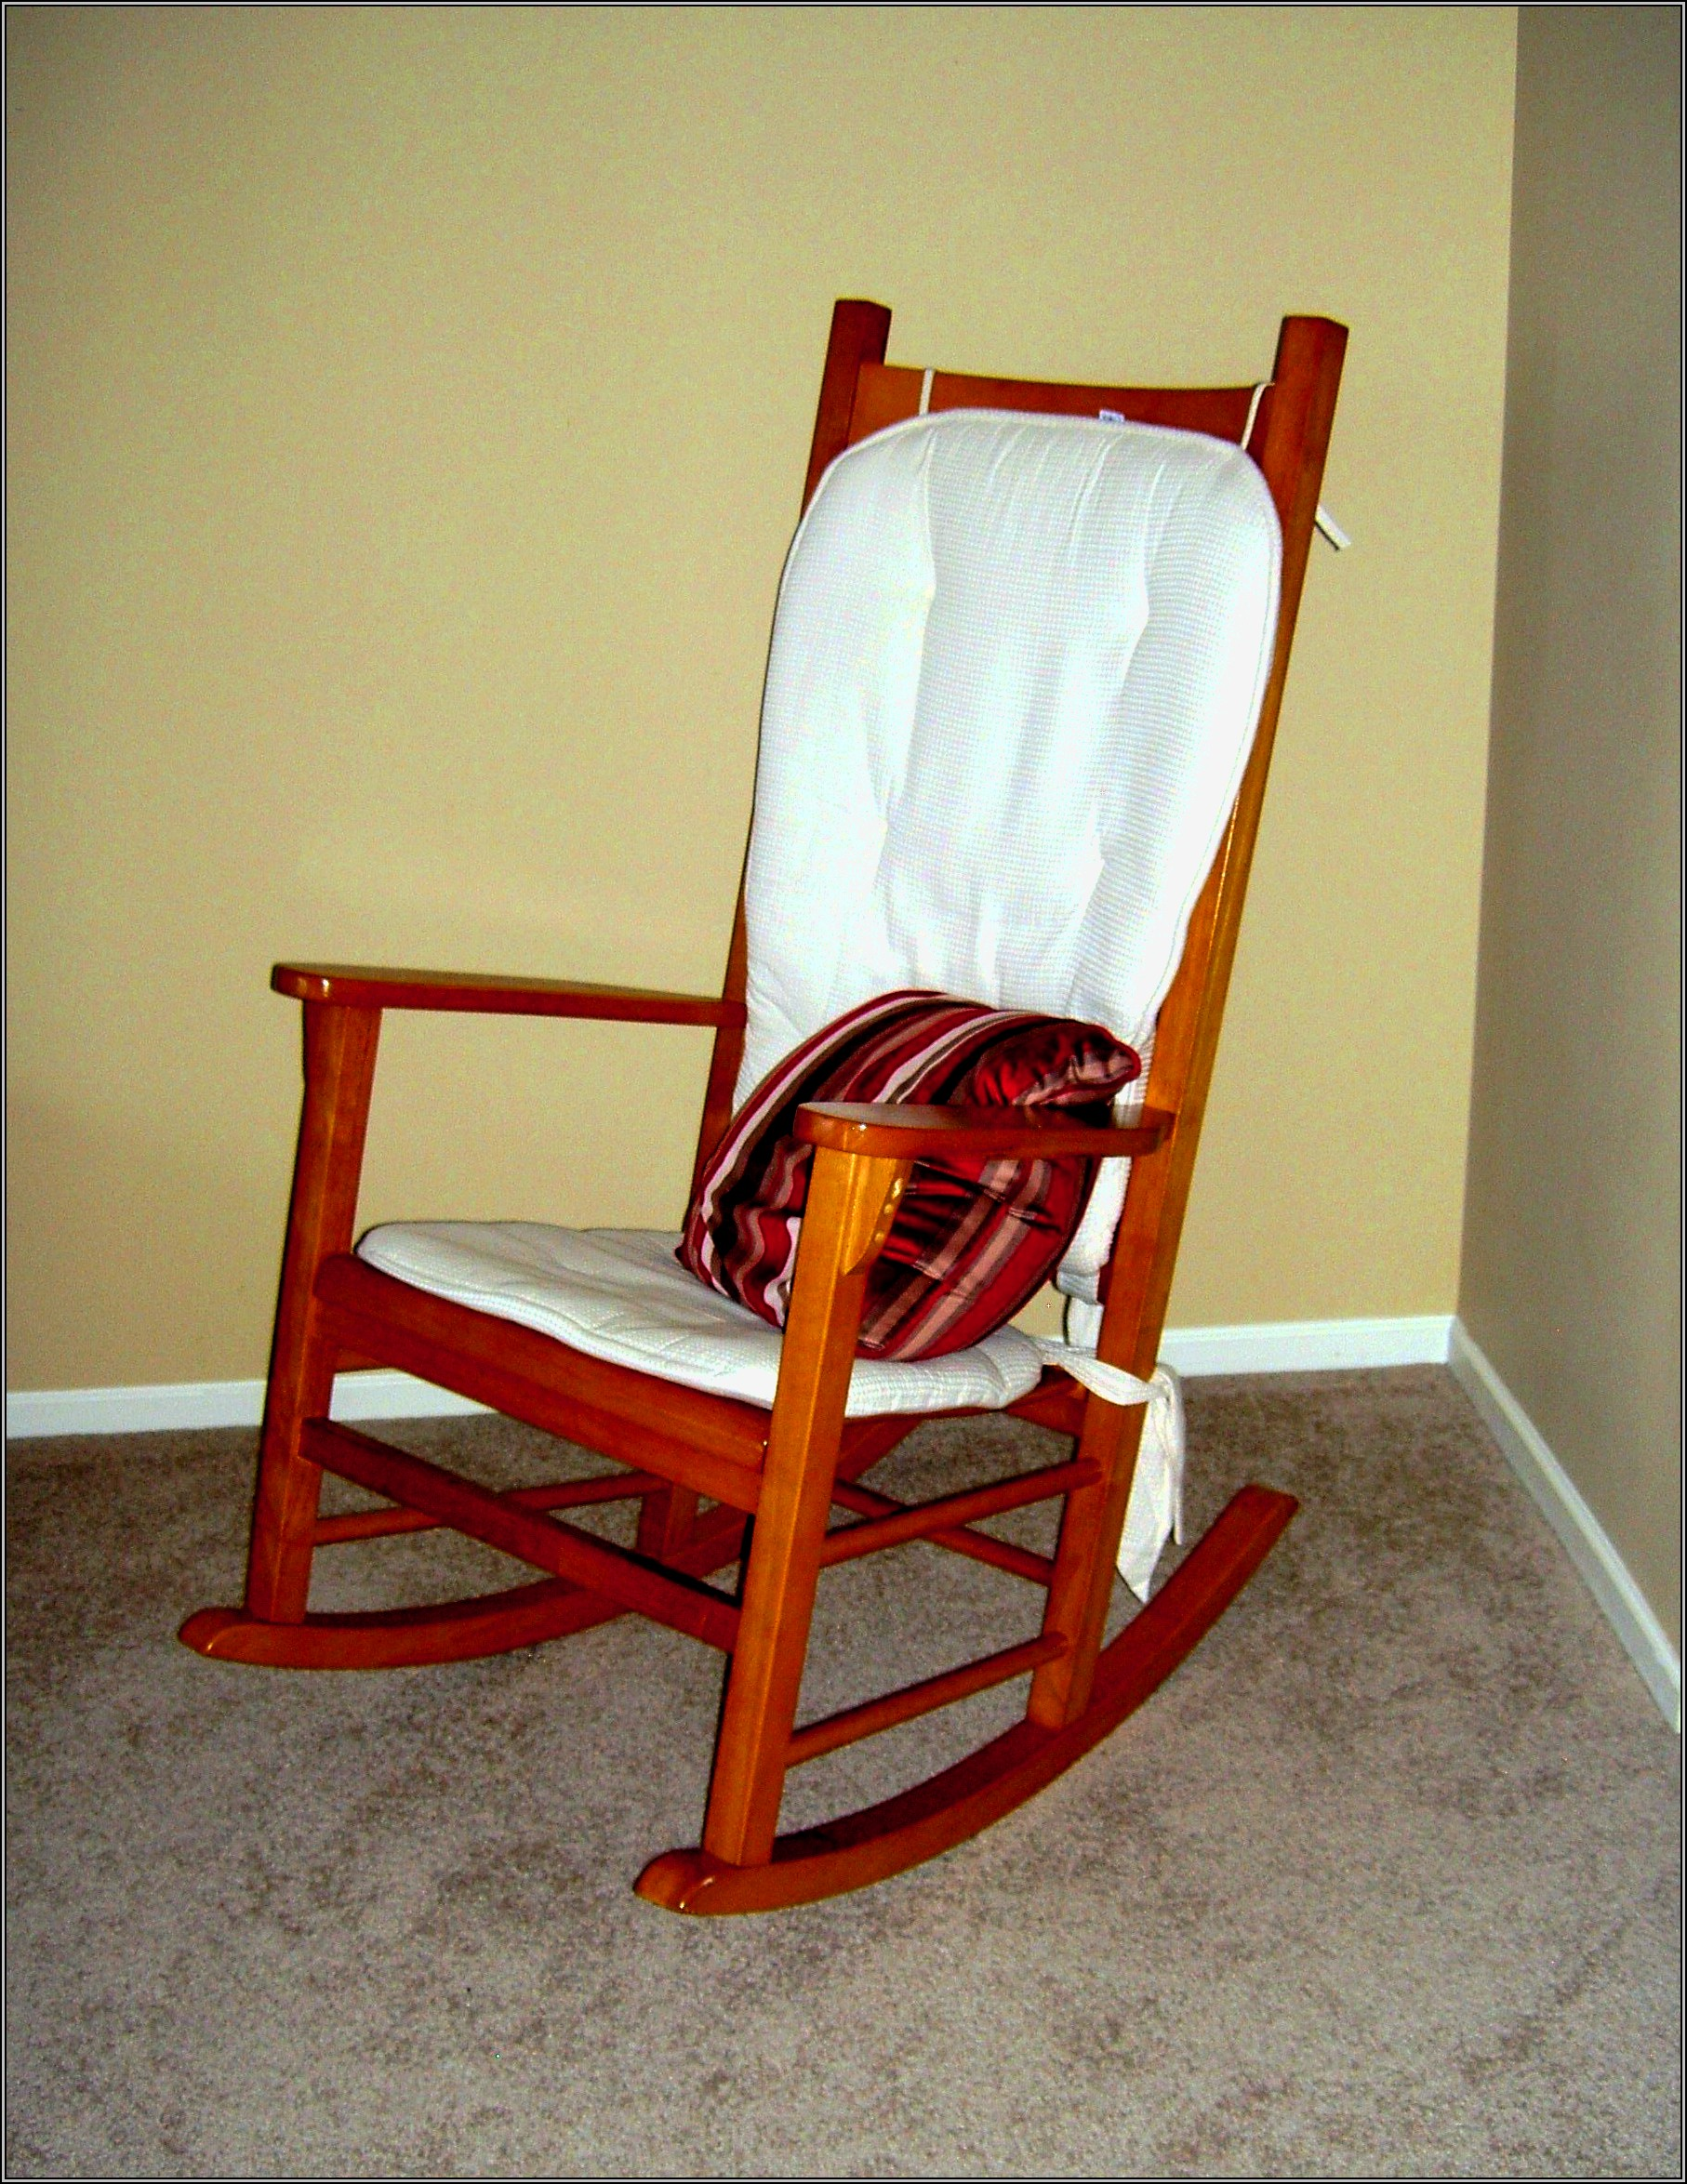 Rocking Chair Pads For Wood Floors Flooring Home